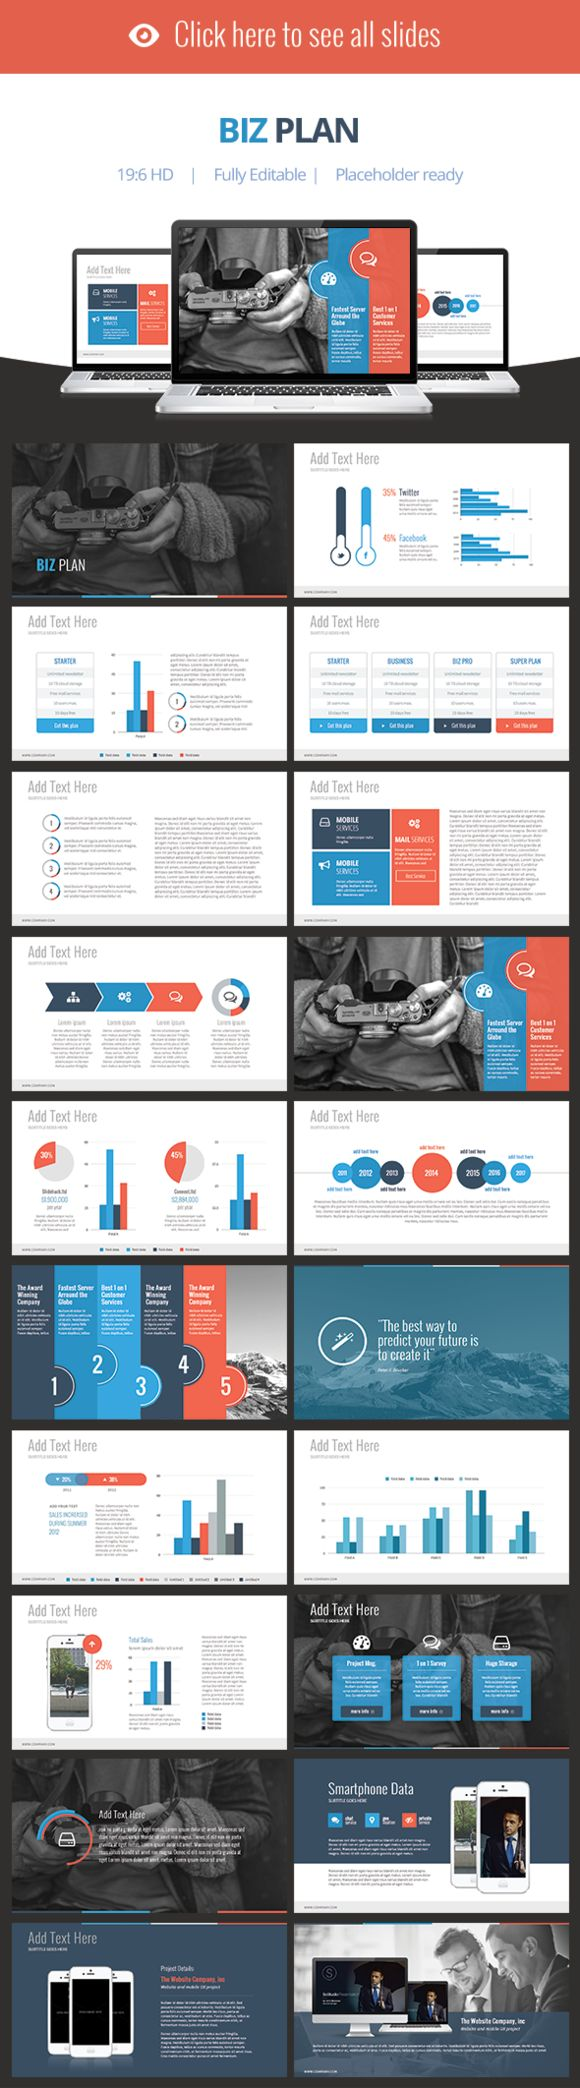 Check out Biz Plan - Keynote Template by Keynote Market on Creative Market